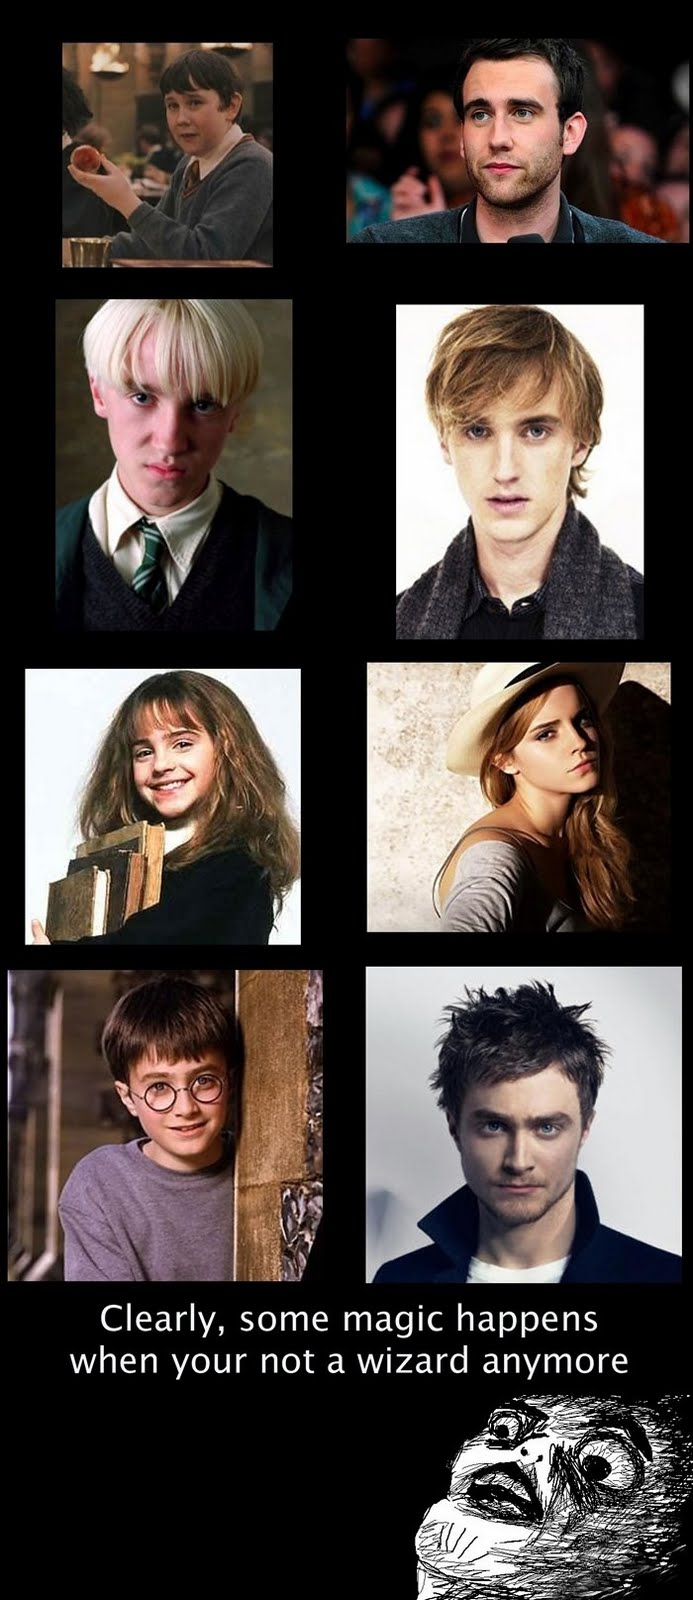 The Cast Of Harry Potter - Then And Now - Clearly, Some Magic Happens When You Are Not A Wizard Anymore